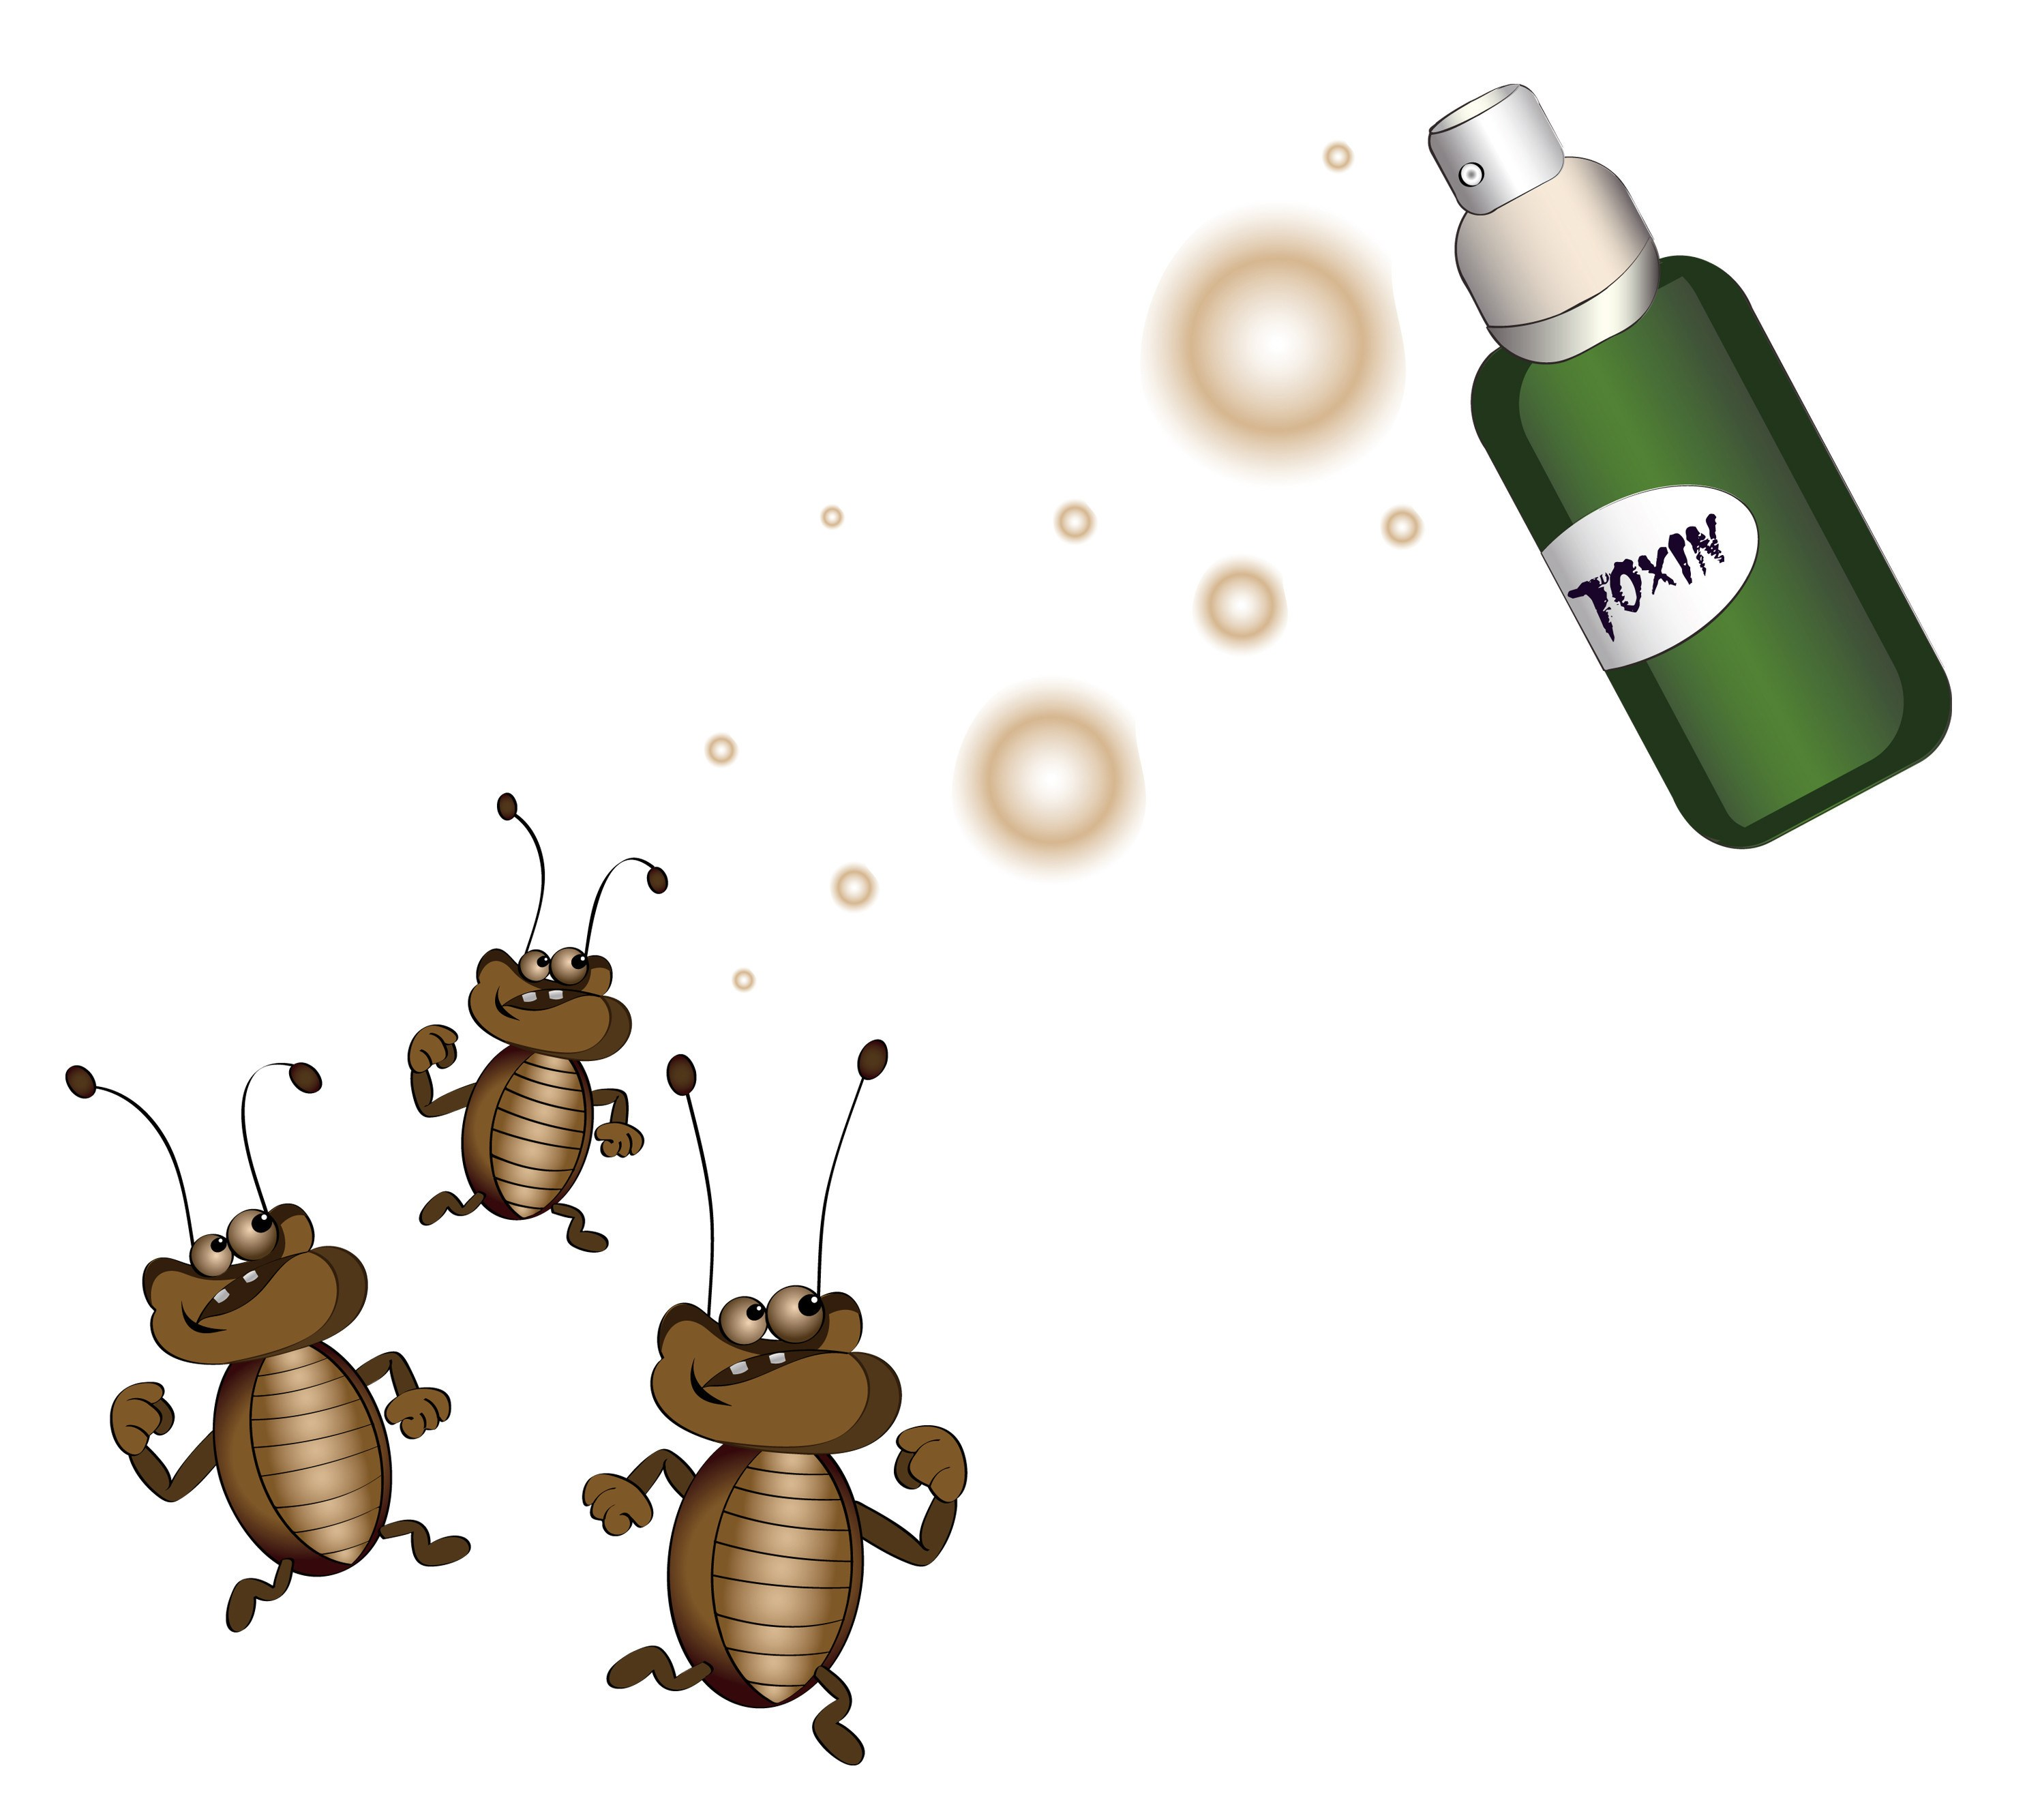 Chemical Cleaning Services. Caution attention signs. Insect fumigation spray symbol.